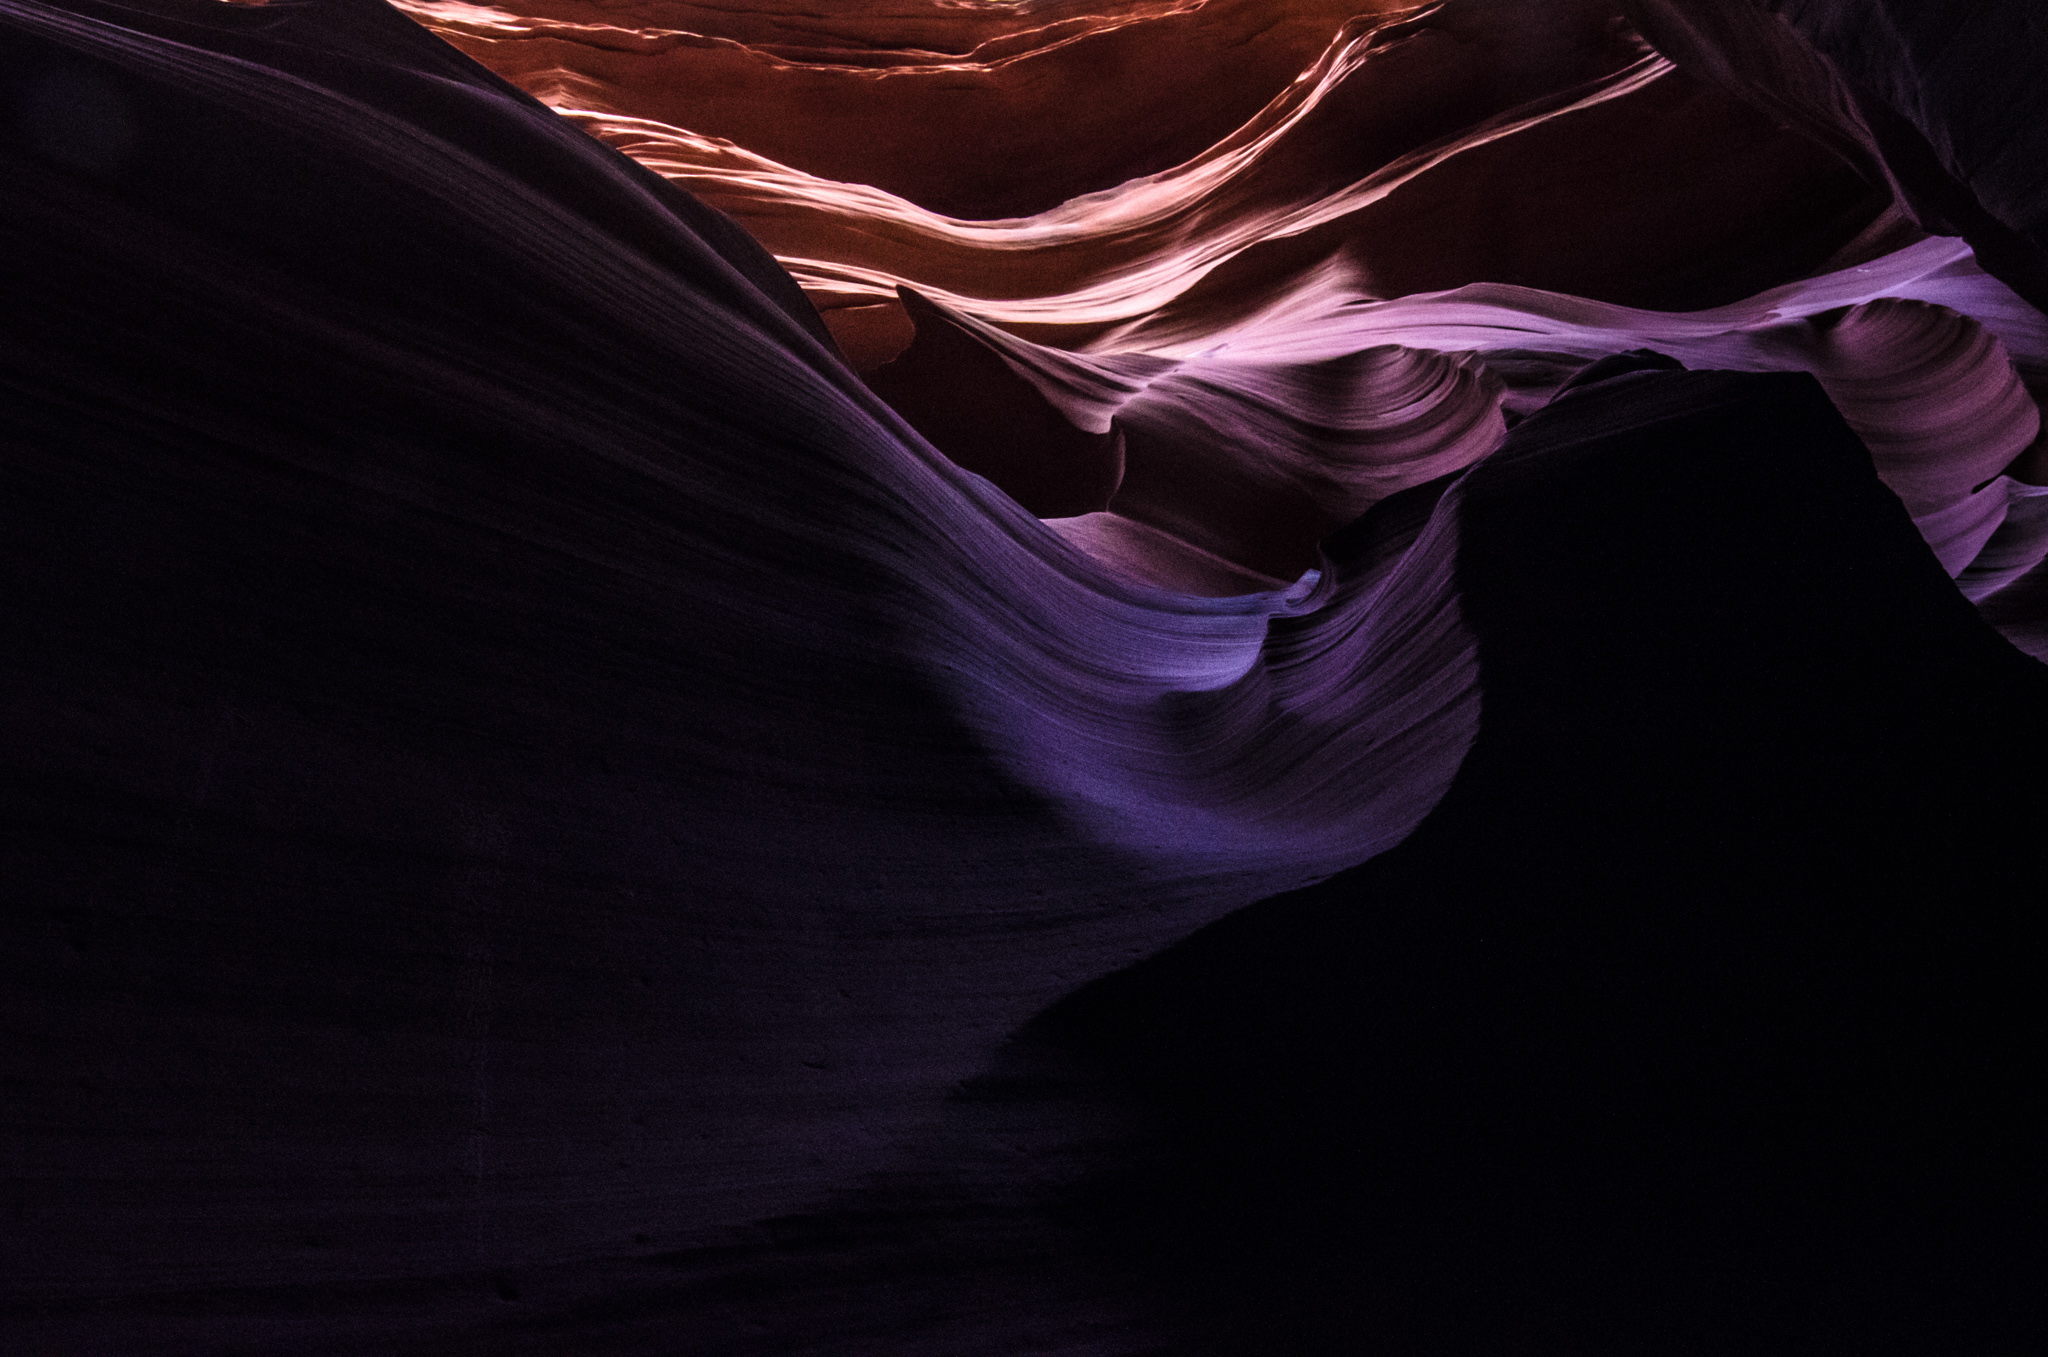 2015-02-21 - Antelope Canyon - 075